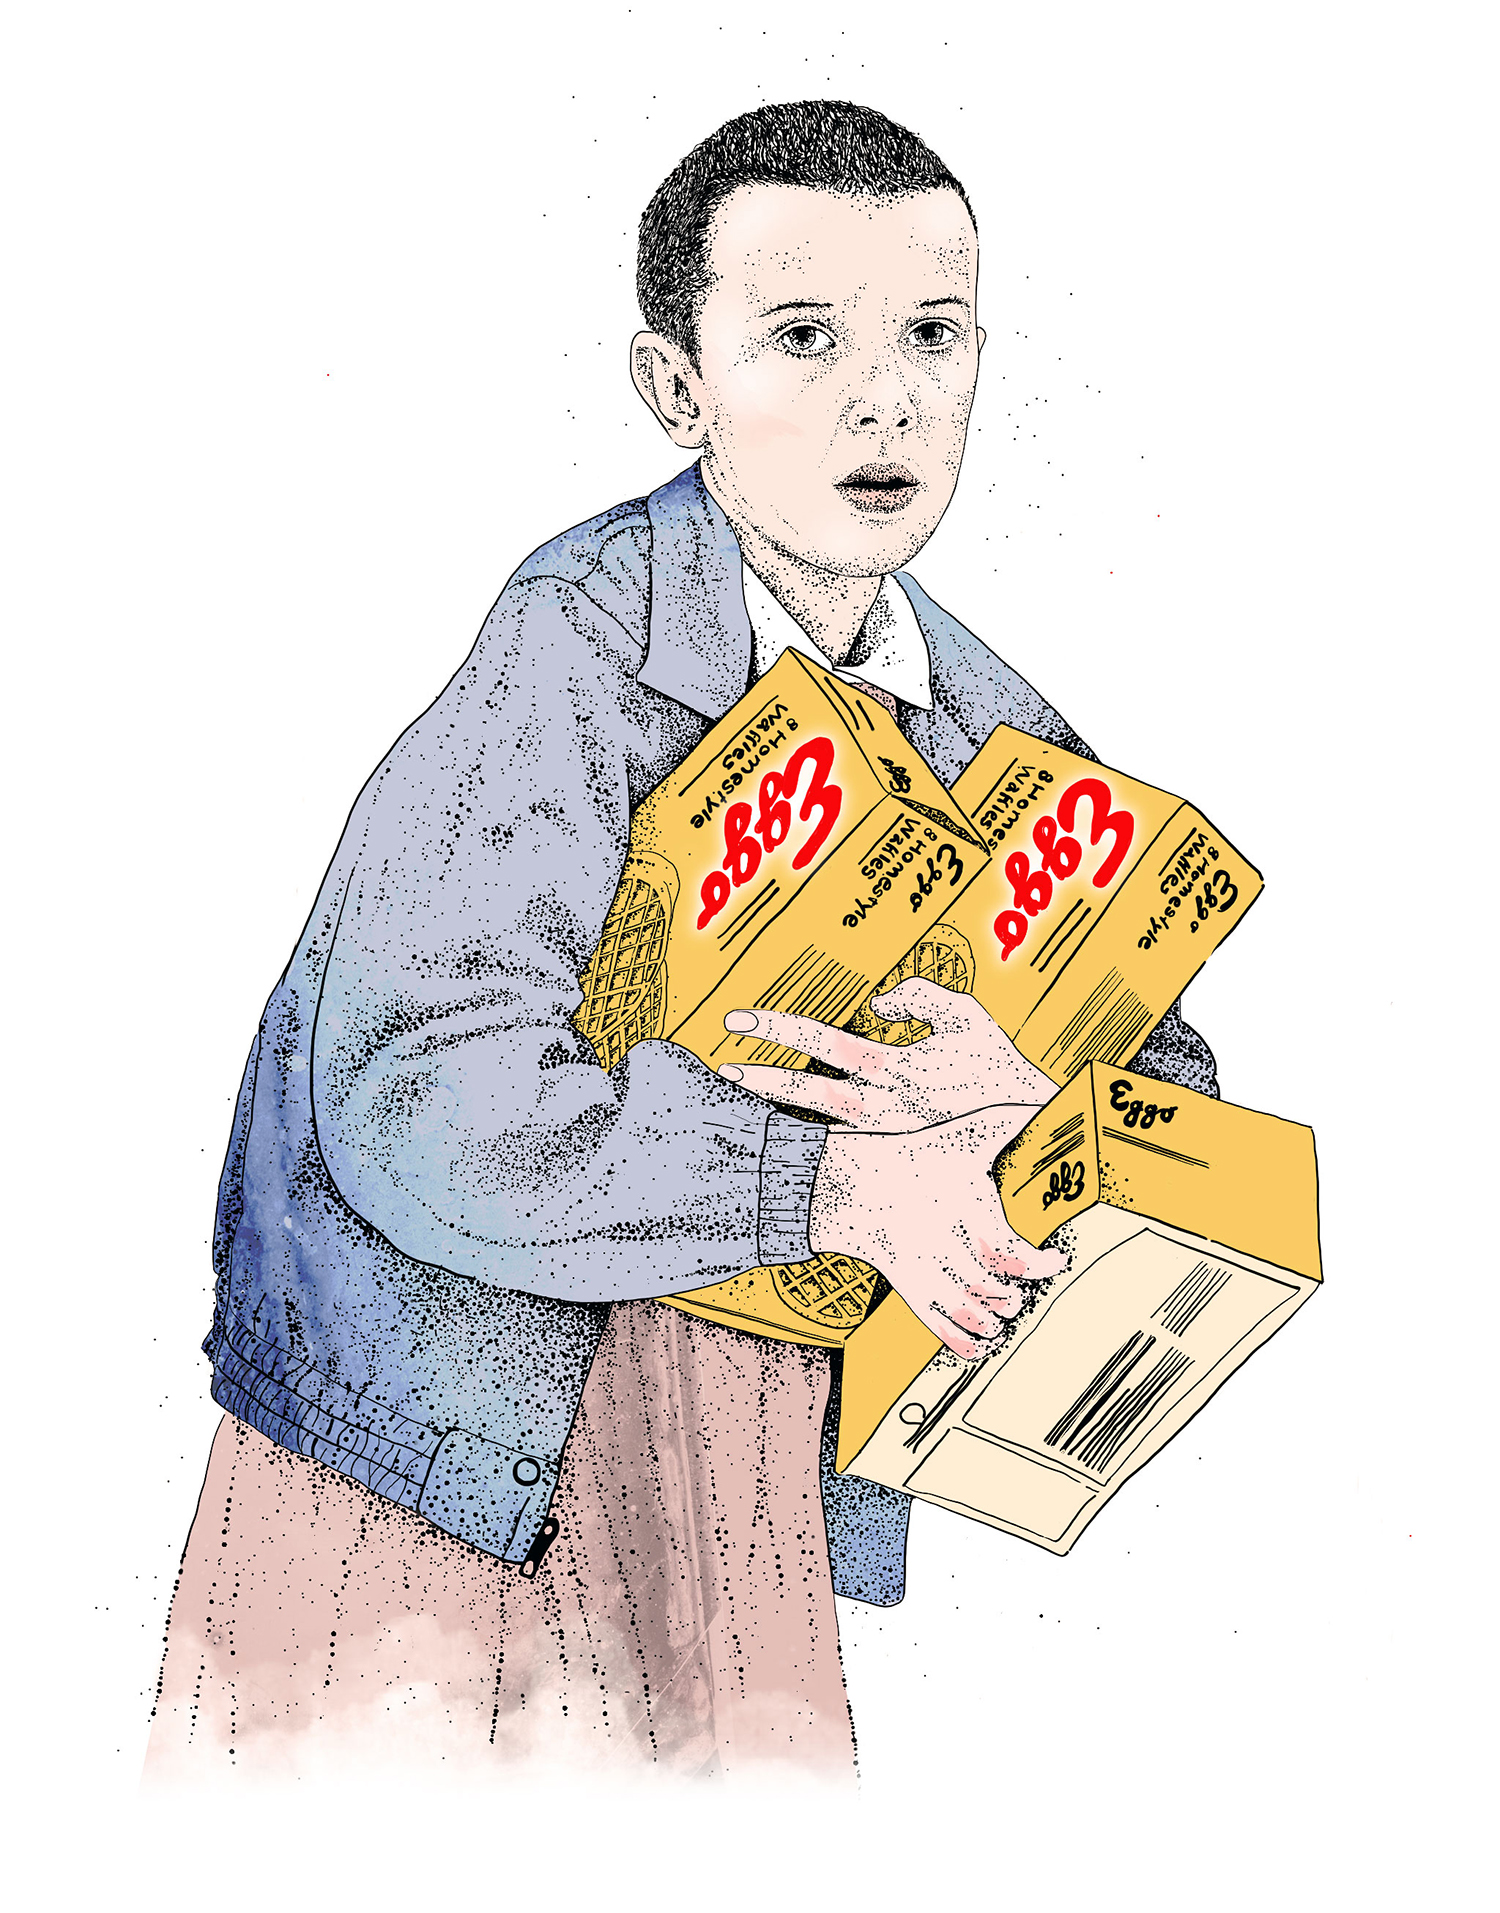 rbtq_Illustration_Seiser_Illustratorin_Hamburg_Millie_Bobby_Brown_dots_Stranger_Things.jpg